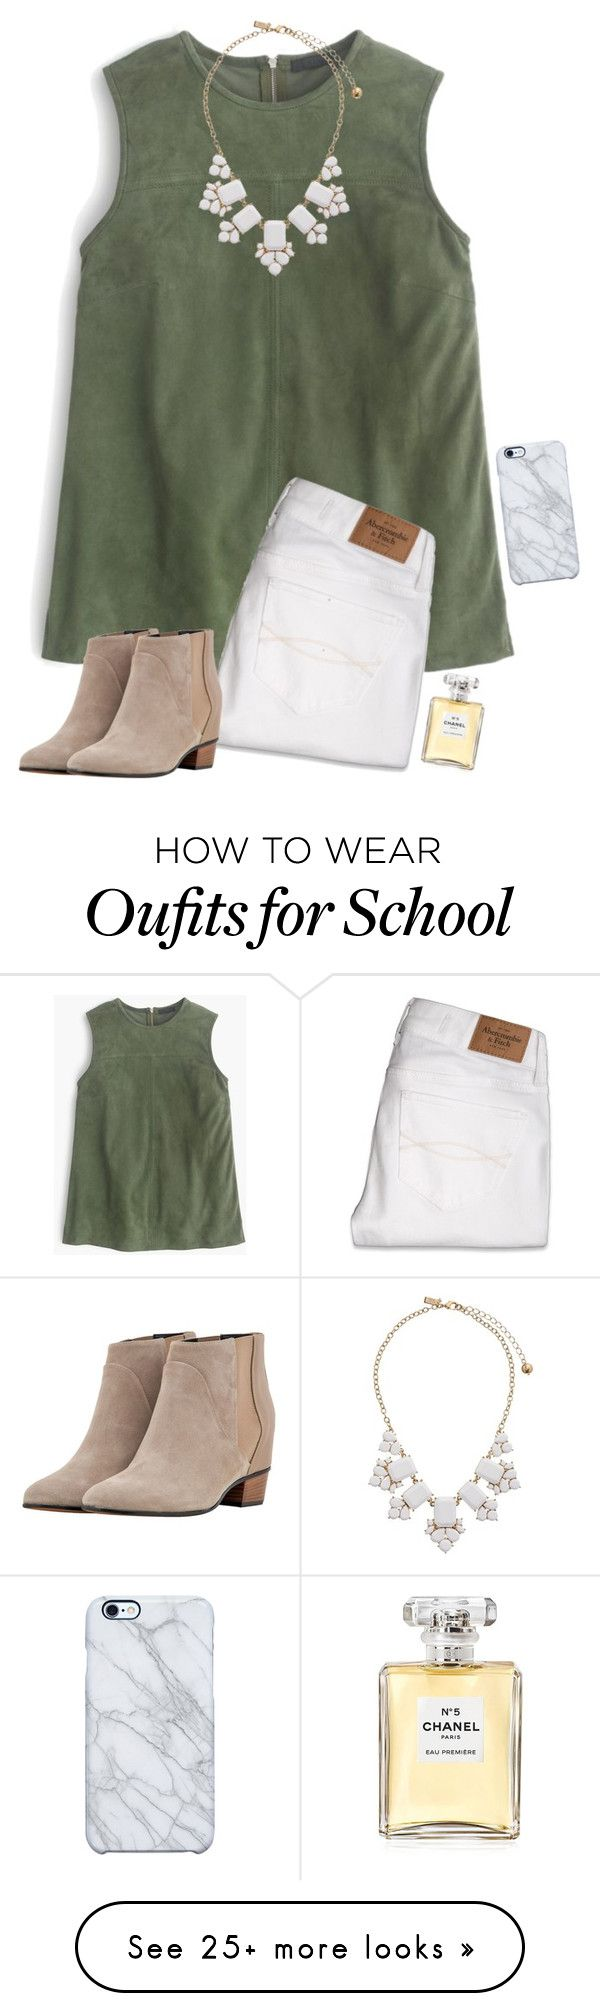 """Ugh, school."" by hopemarlee on Polyvore featuring J.Crew, Abercrombie & Fitch, Golden Goose, Kate Spade, Chanel and Uncommon"